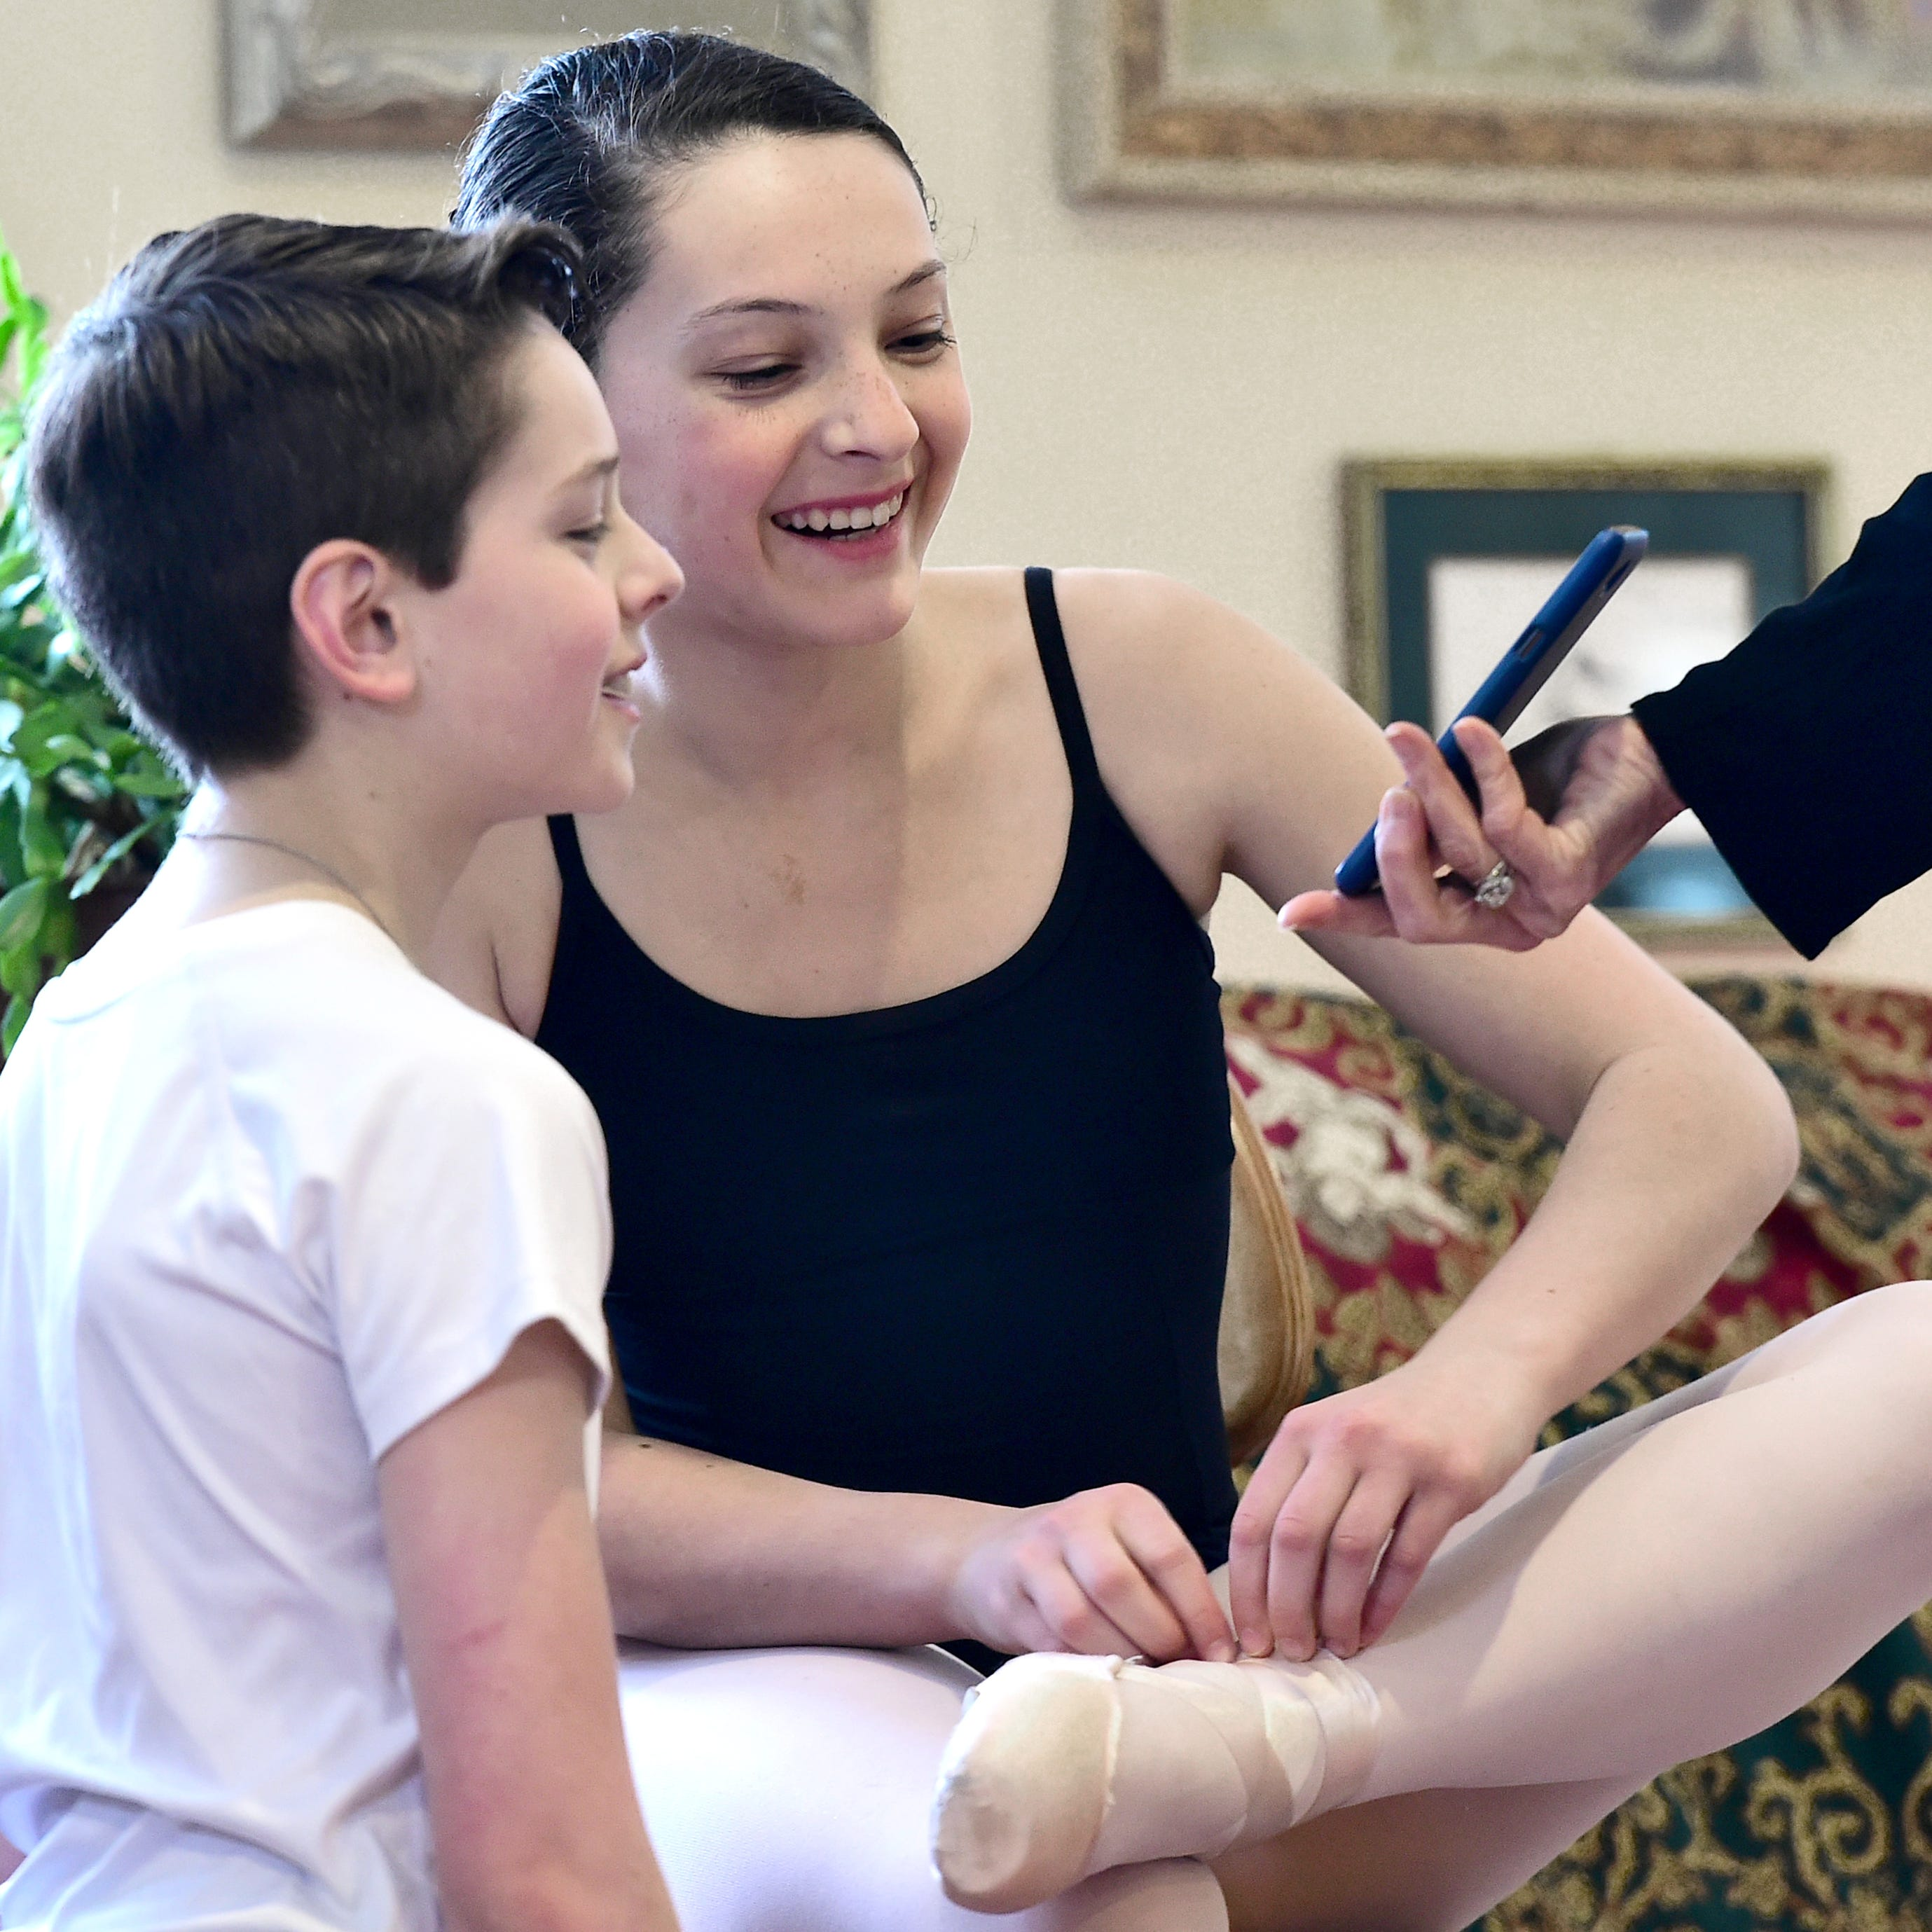 From Syracuse to American Ballet Theatre: Brother-sister duo have fun dancing together